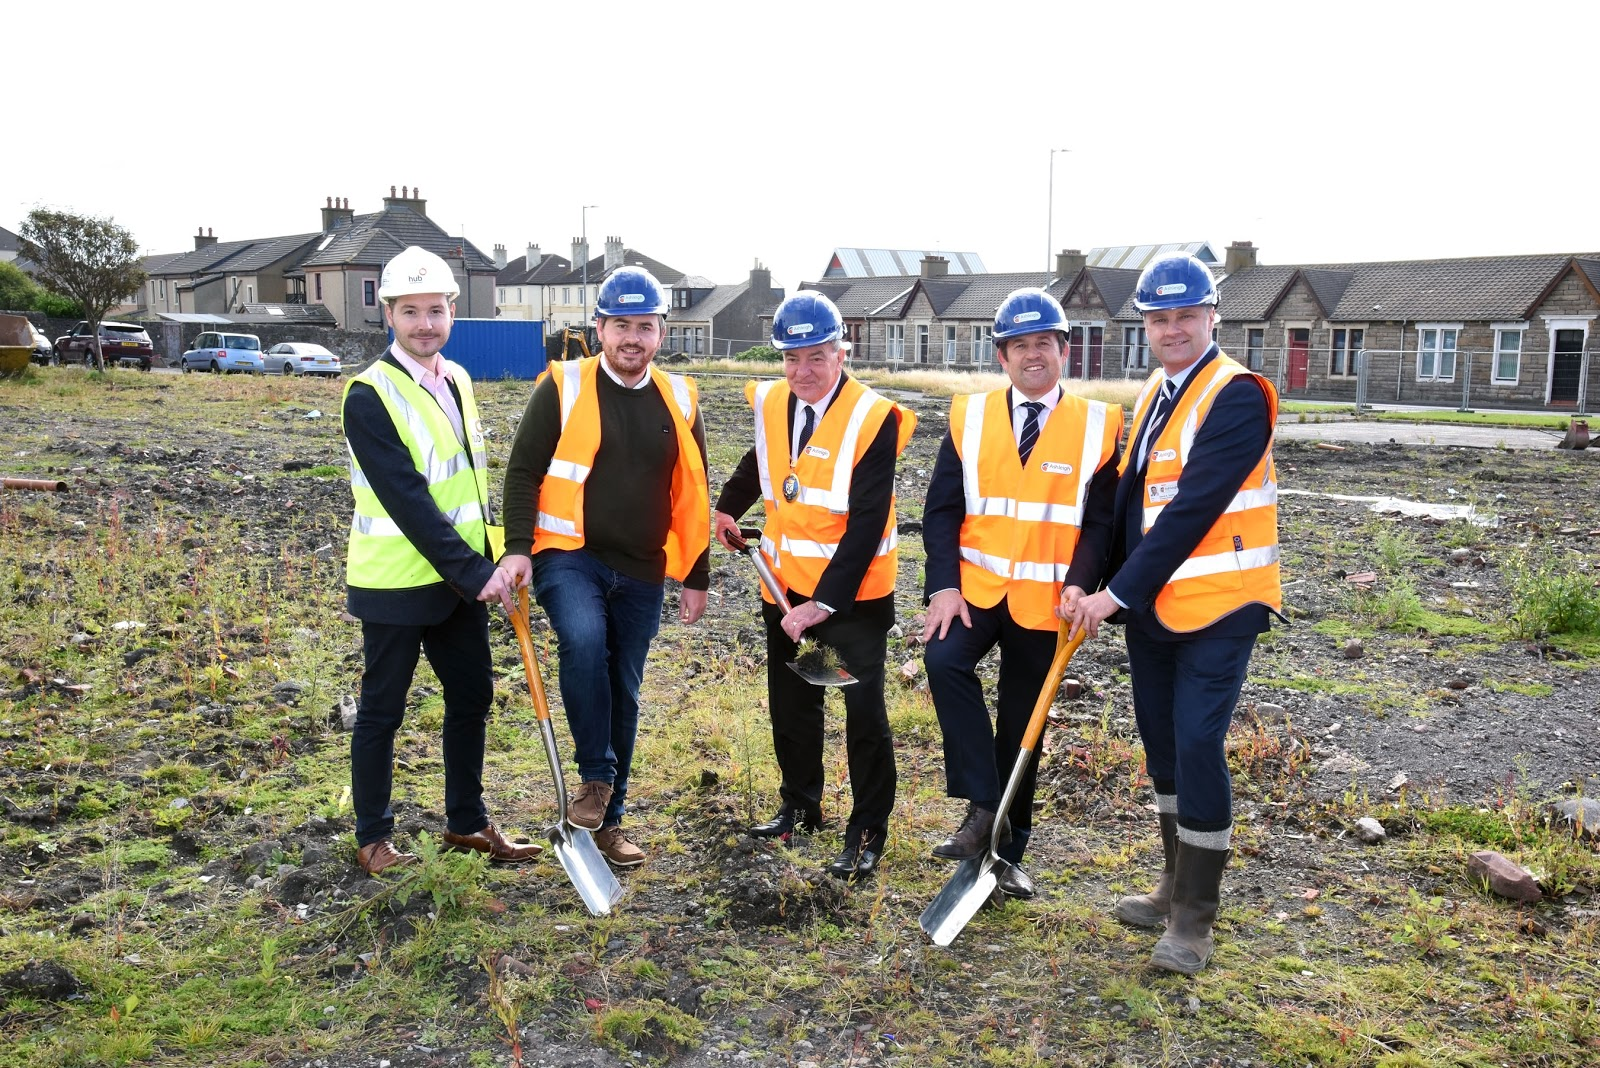 Construction Work Has Started on the New Sheltered Housing Development